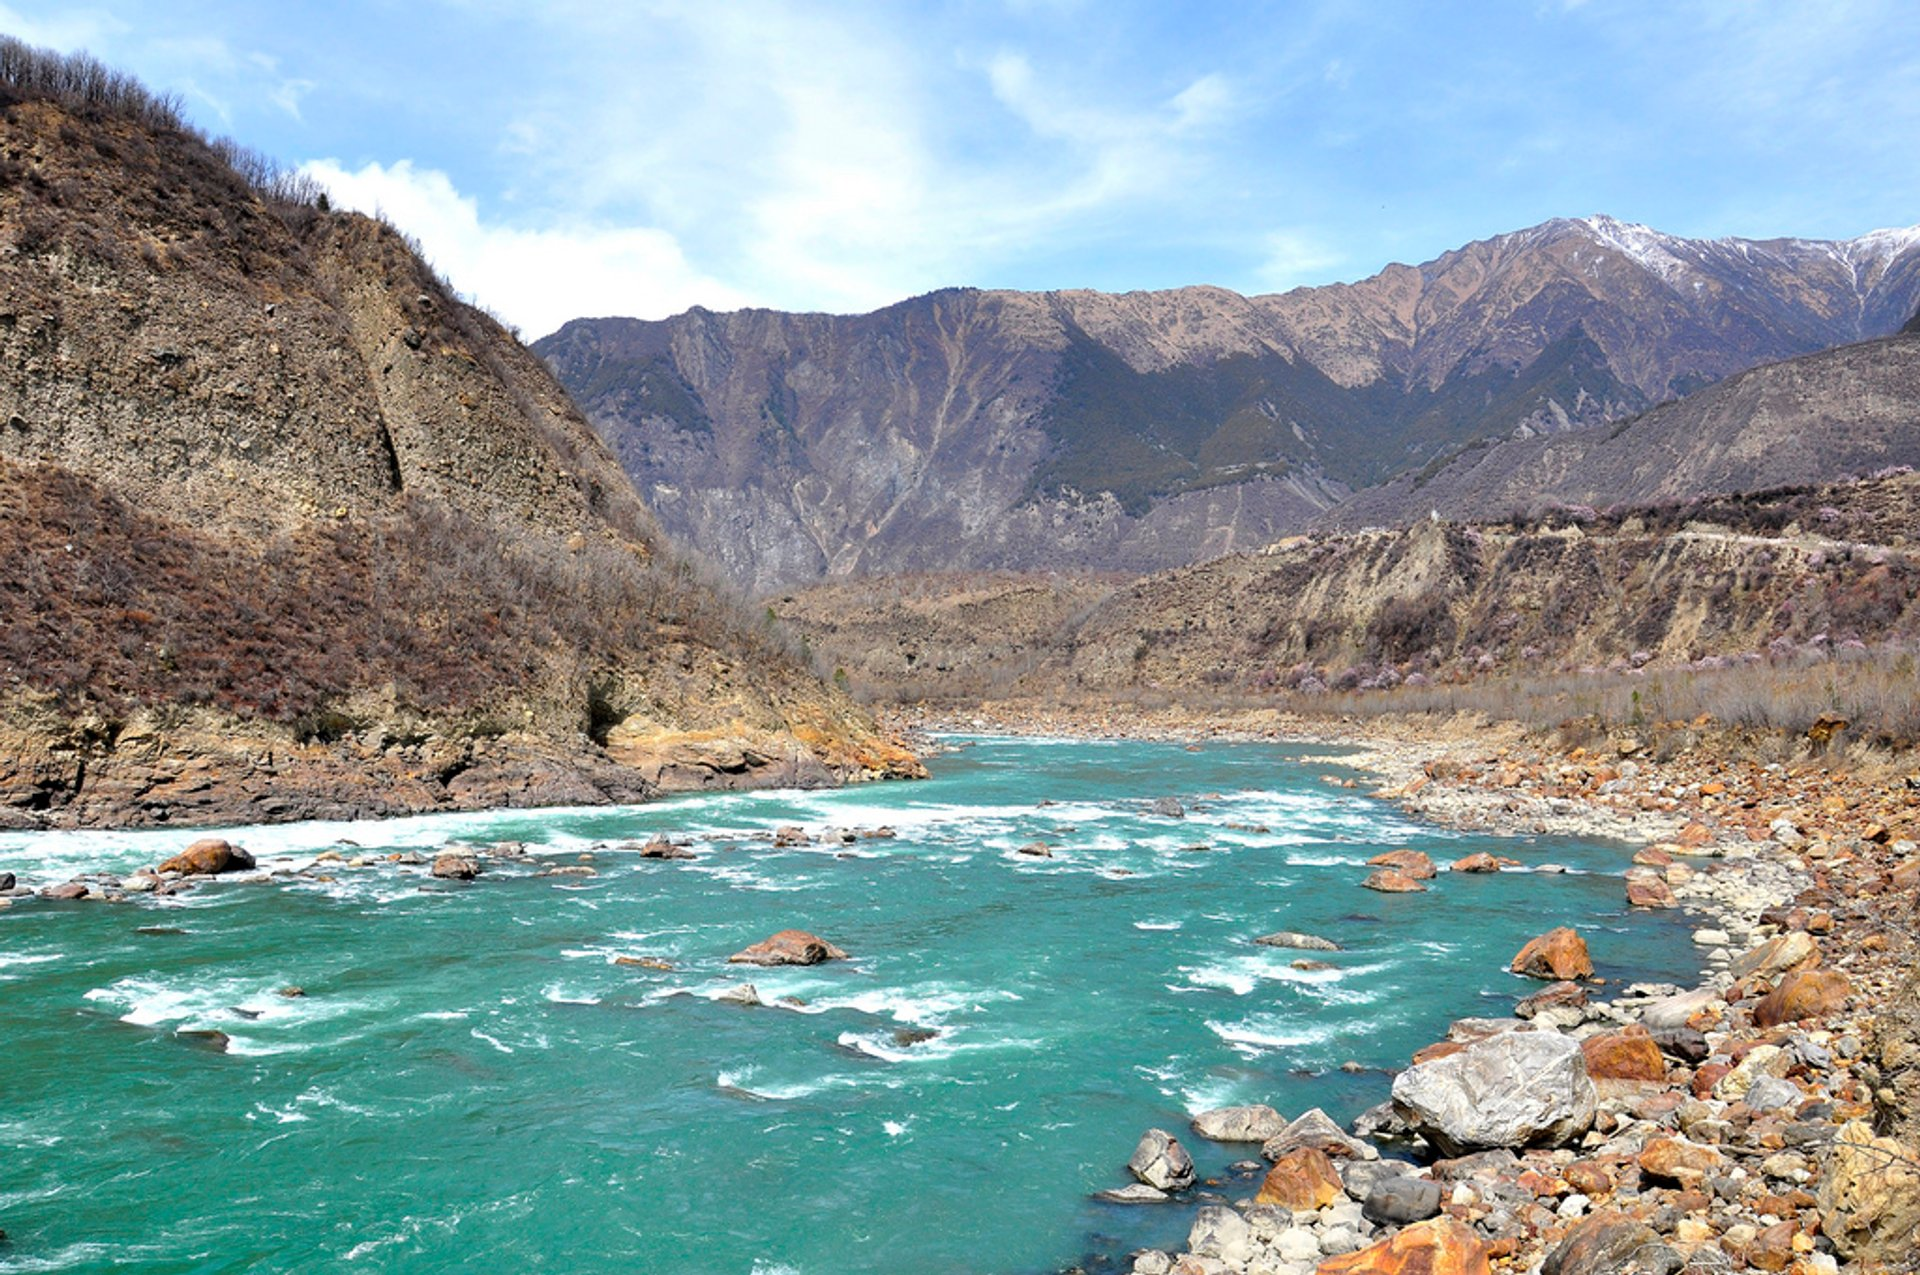 Yarlung Tsangpo Canyon in Tibet 2019 - Best Time